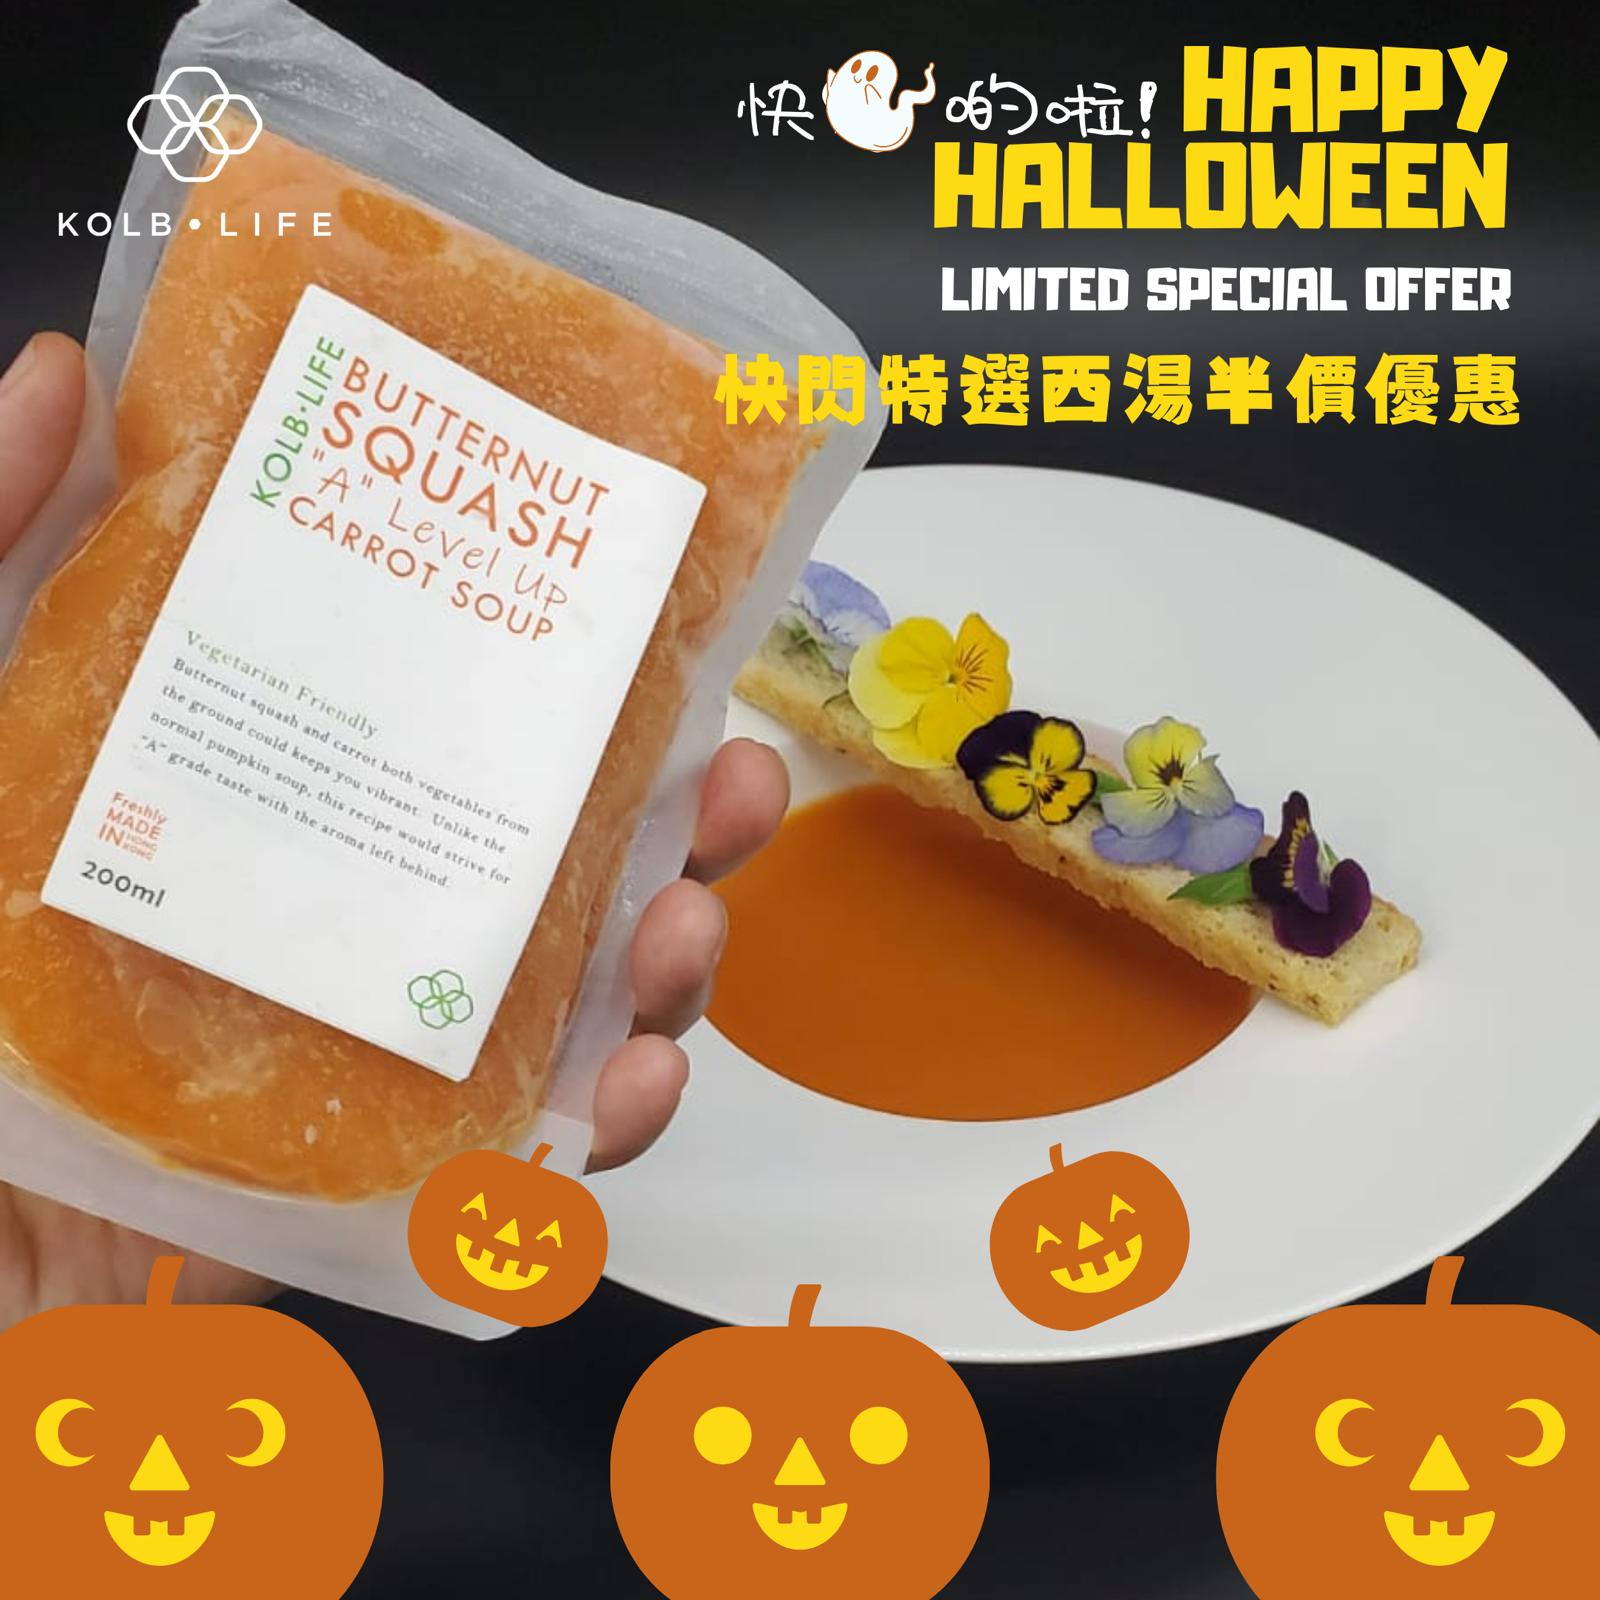 """A"" Level Up (BUTTERNUT SQUASH CARROT SOUP) (Halloween Flash Sales)"